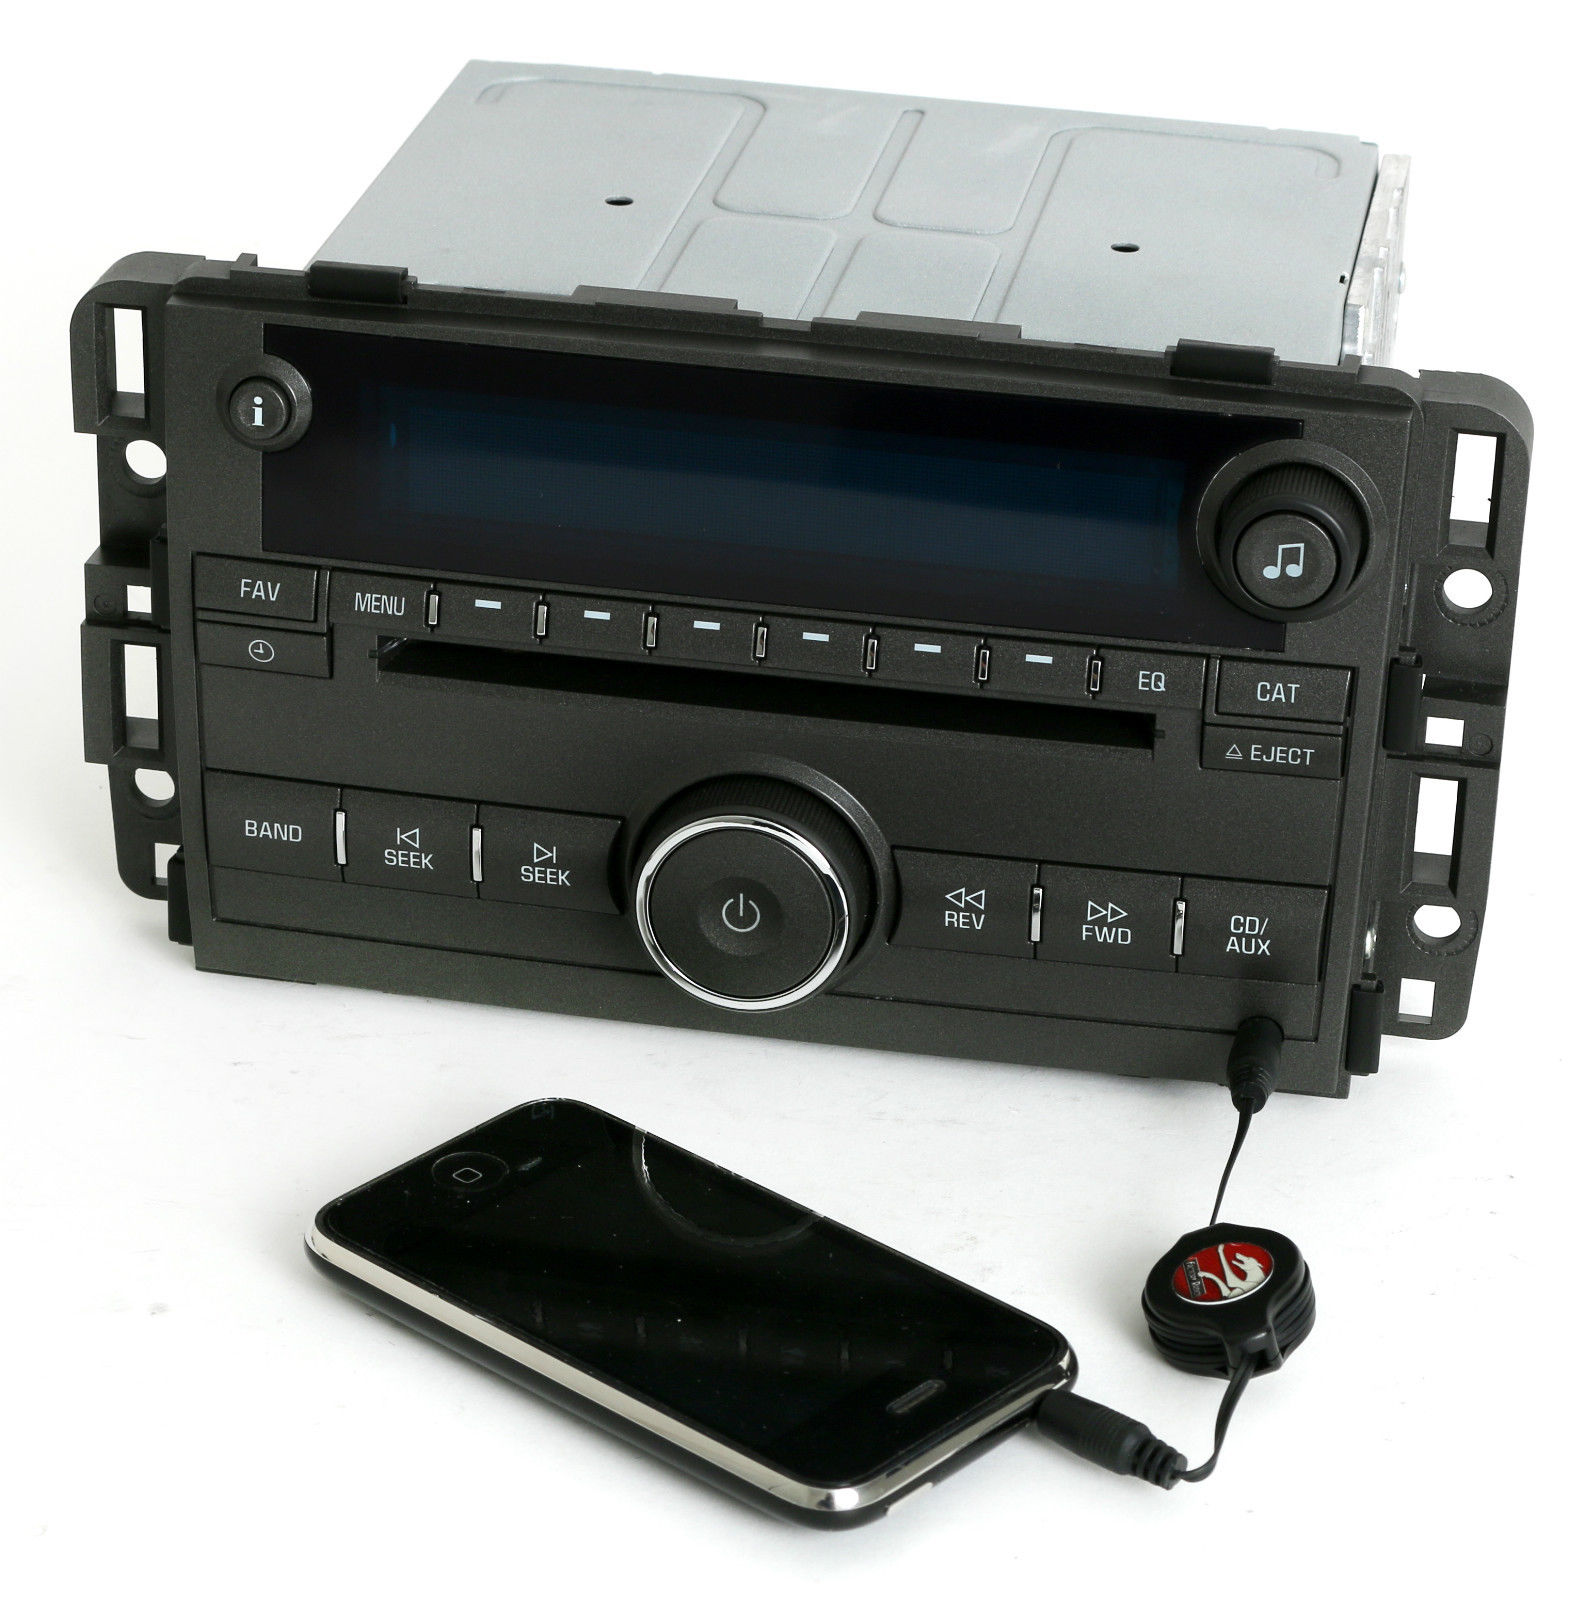 Buick Lucerne 2008 AM FM MP3 CD Player w Aux Input - US8 - 25957382 on plymouth neon, exotic cars neon, venom gt neon, mustang neon, harley-davidson neon, dodge neon, nissan neon, fresh air door 2002 neon,